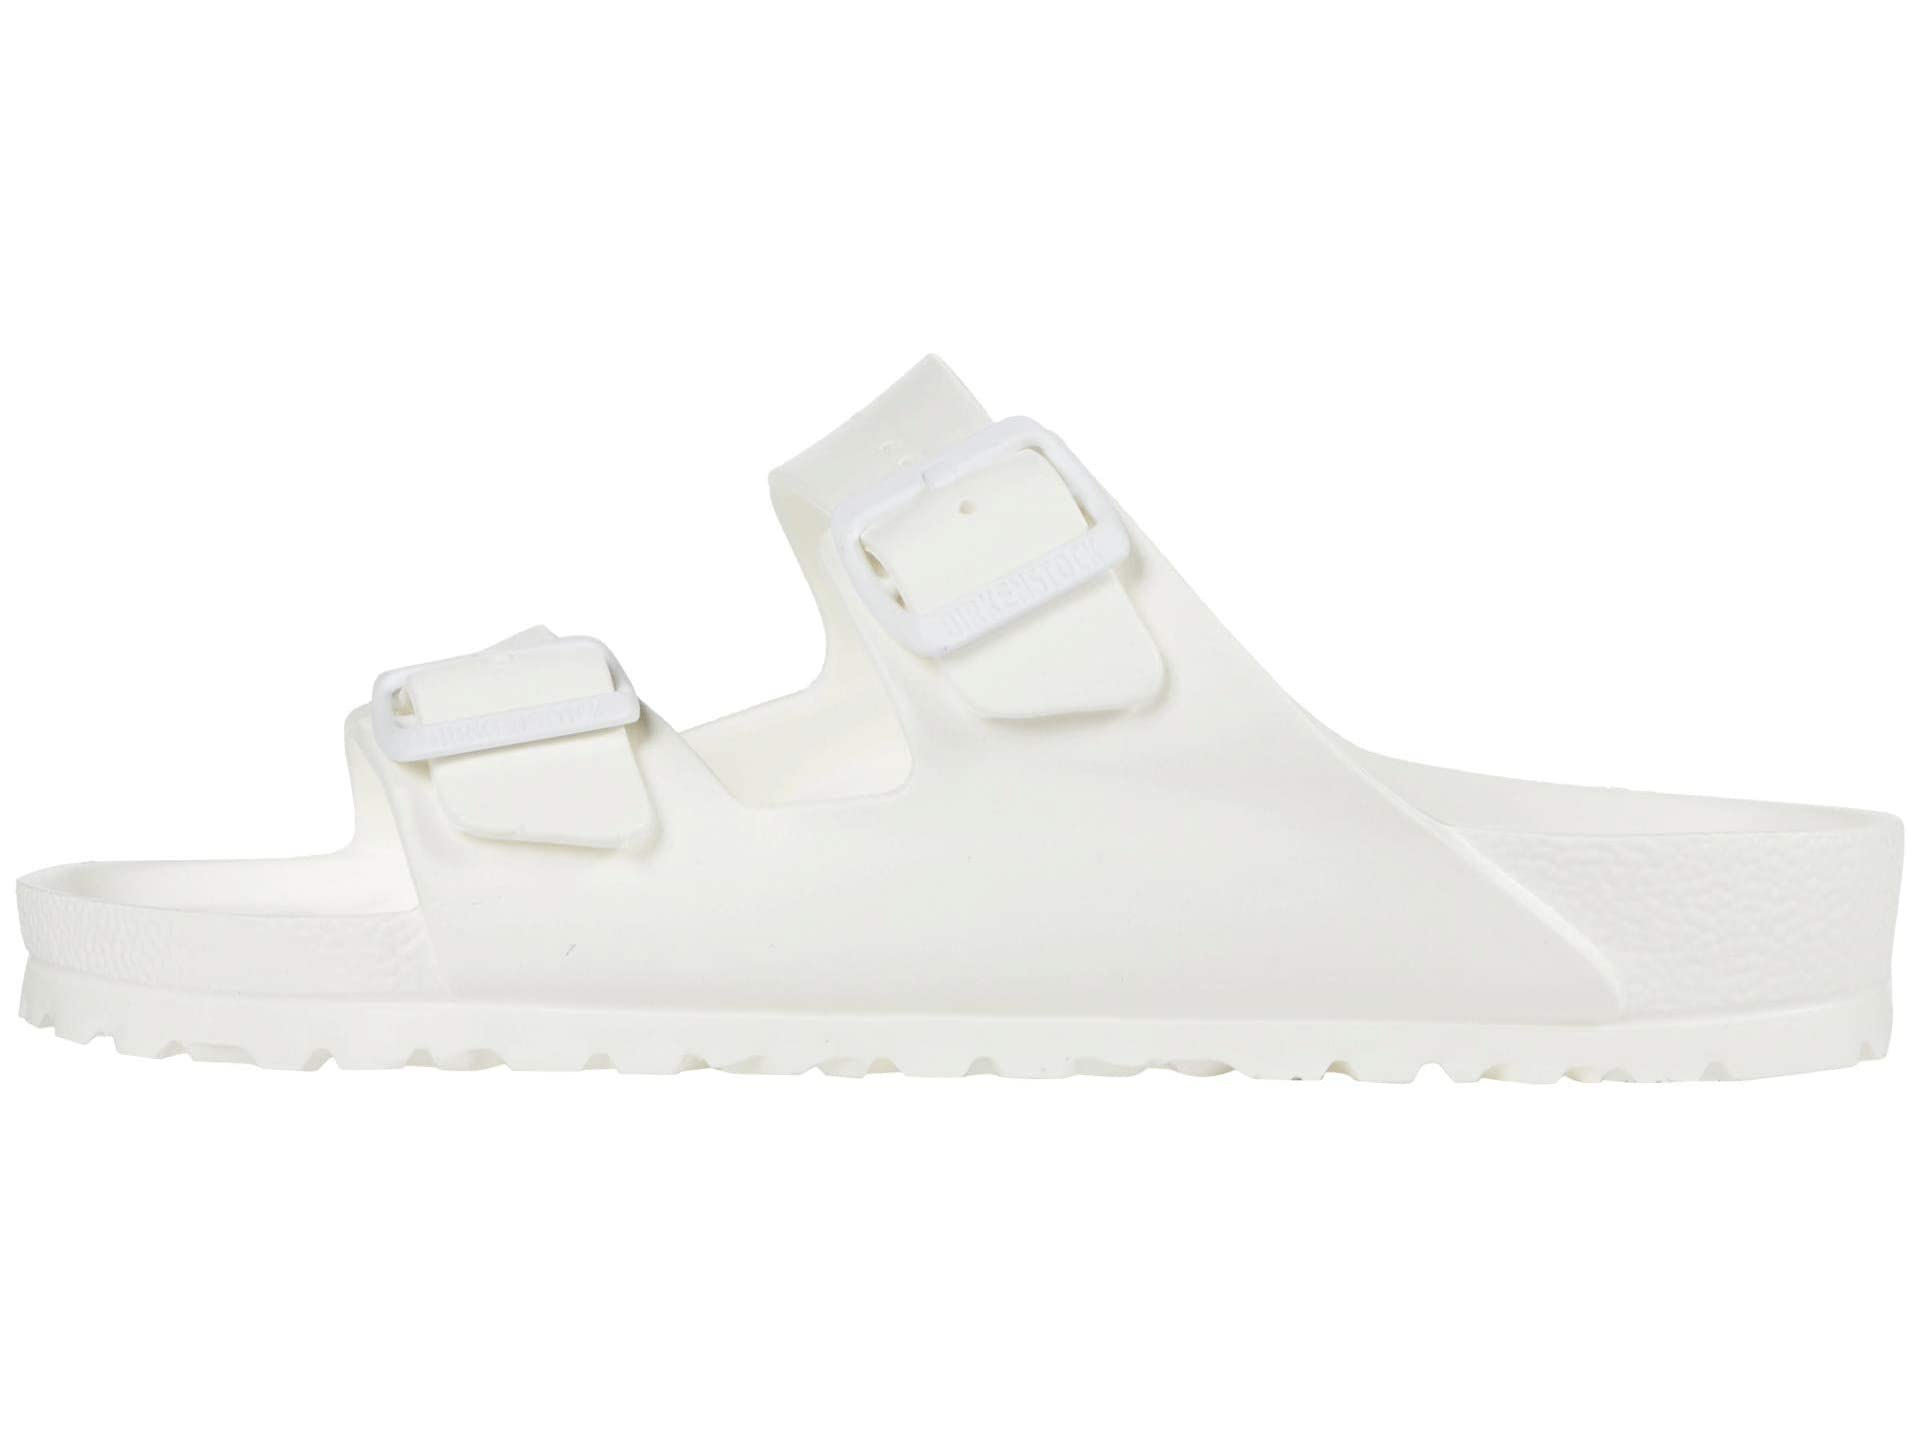 At Any Heel Height, White Sandals Are